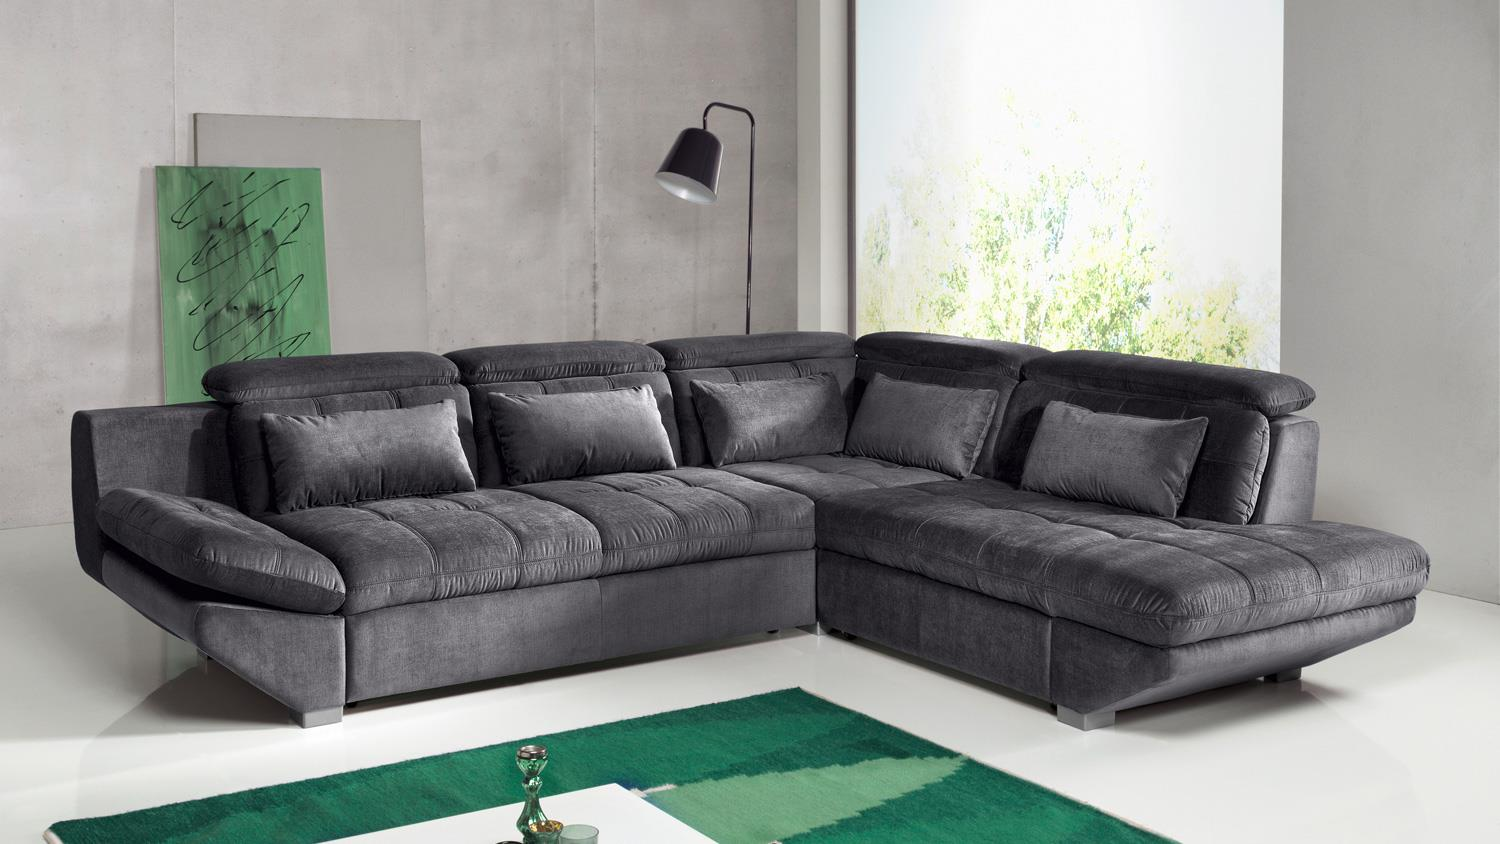 sofa mit abnehmbaren bezug neu sofa mit abnehmbaren bezug sch n home ideen home ideen sofa mit. Black Bedroom Furniture Sets. Home Design Ideas